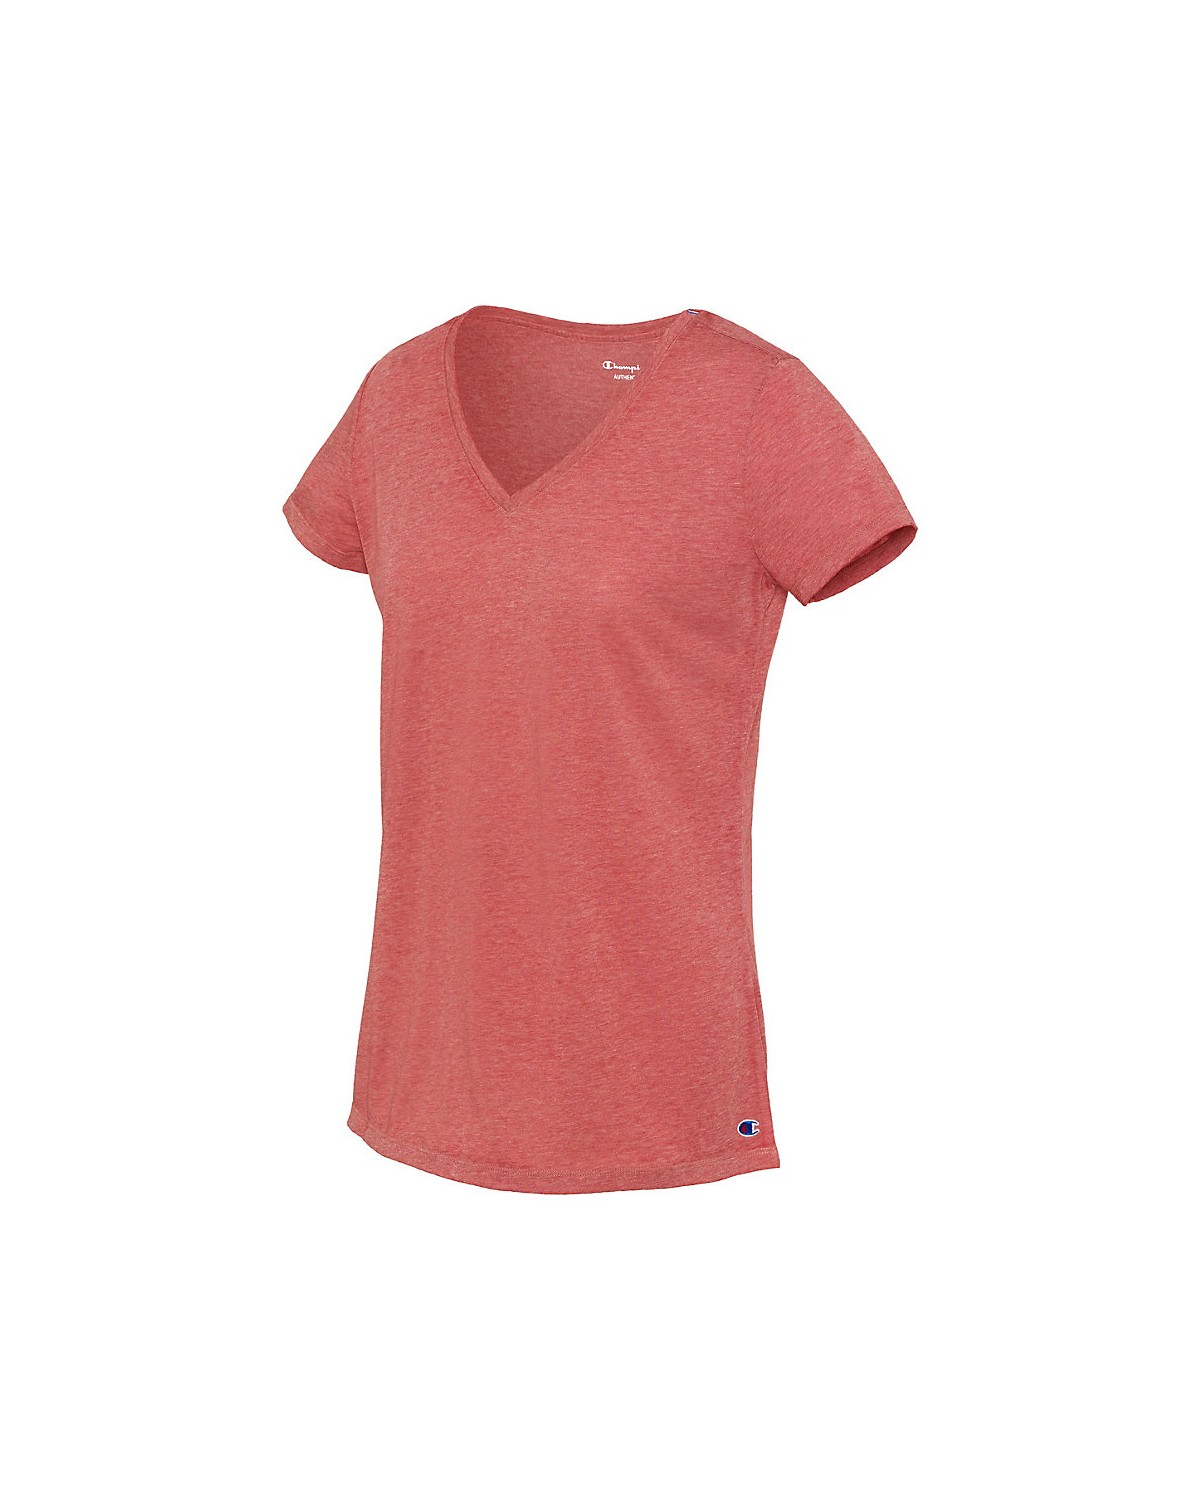 W0821 Champion Sideline Red